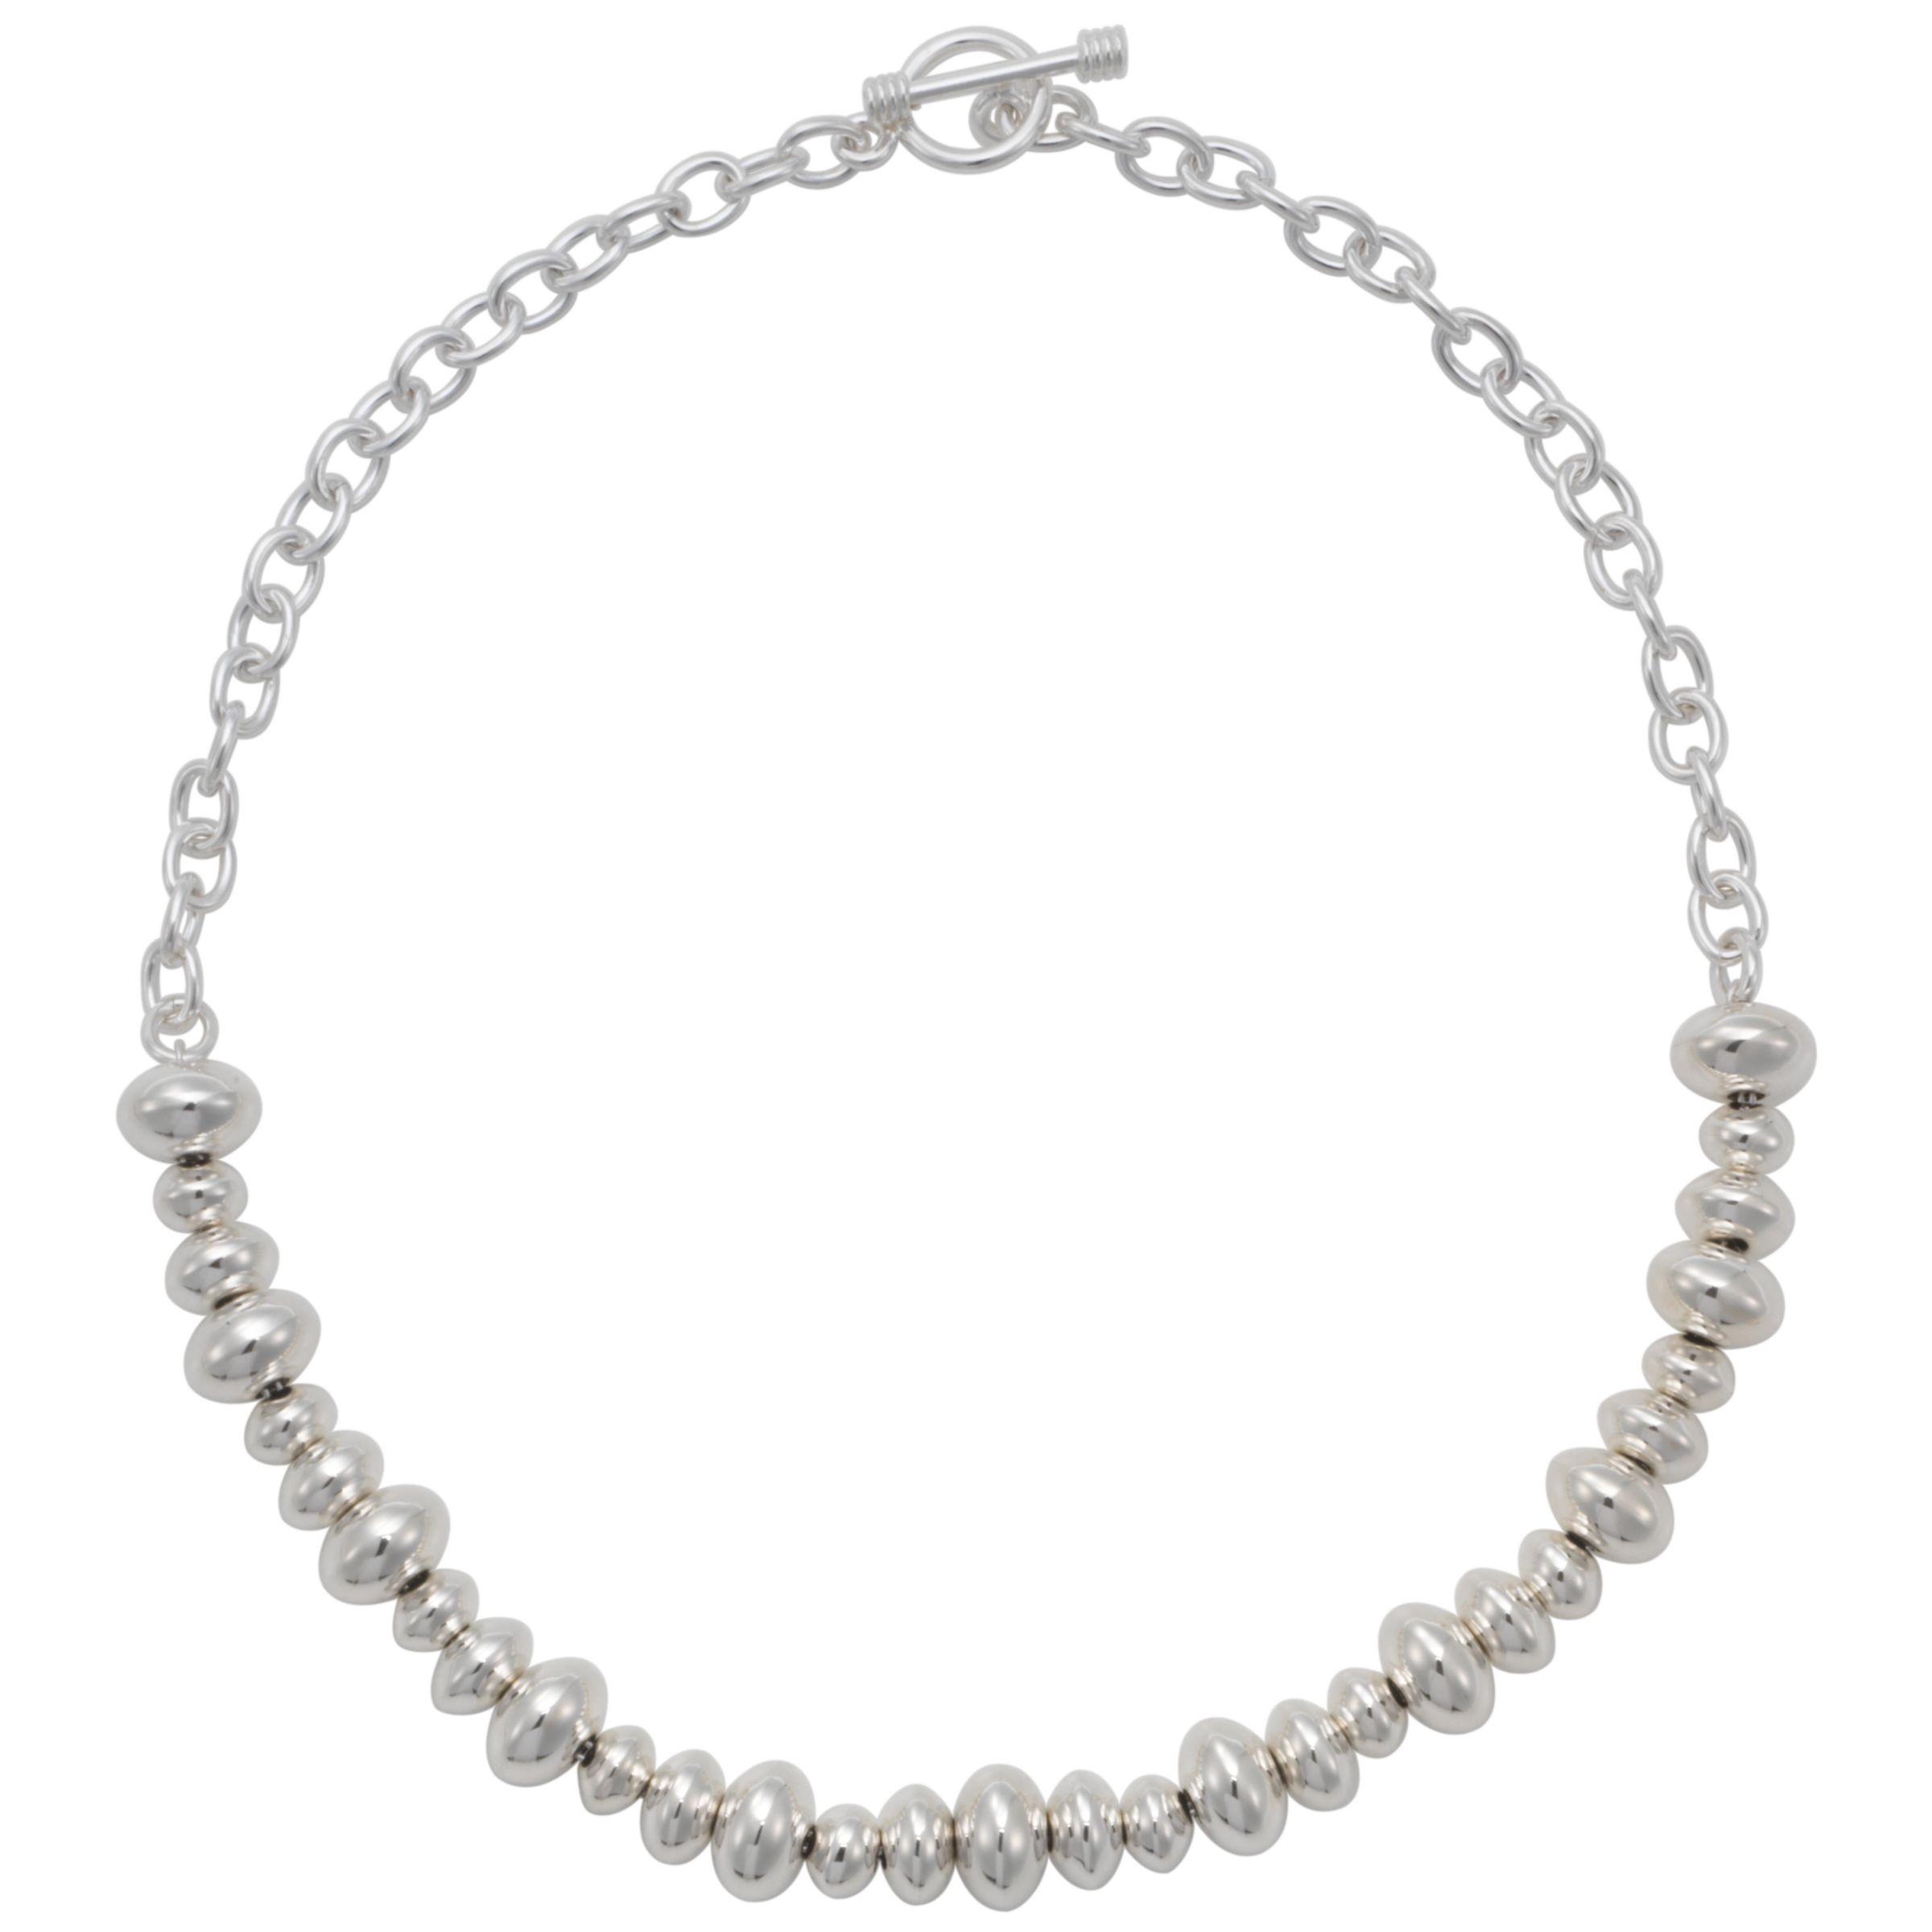 Andea Silver Rondelle Chain Necklace